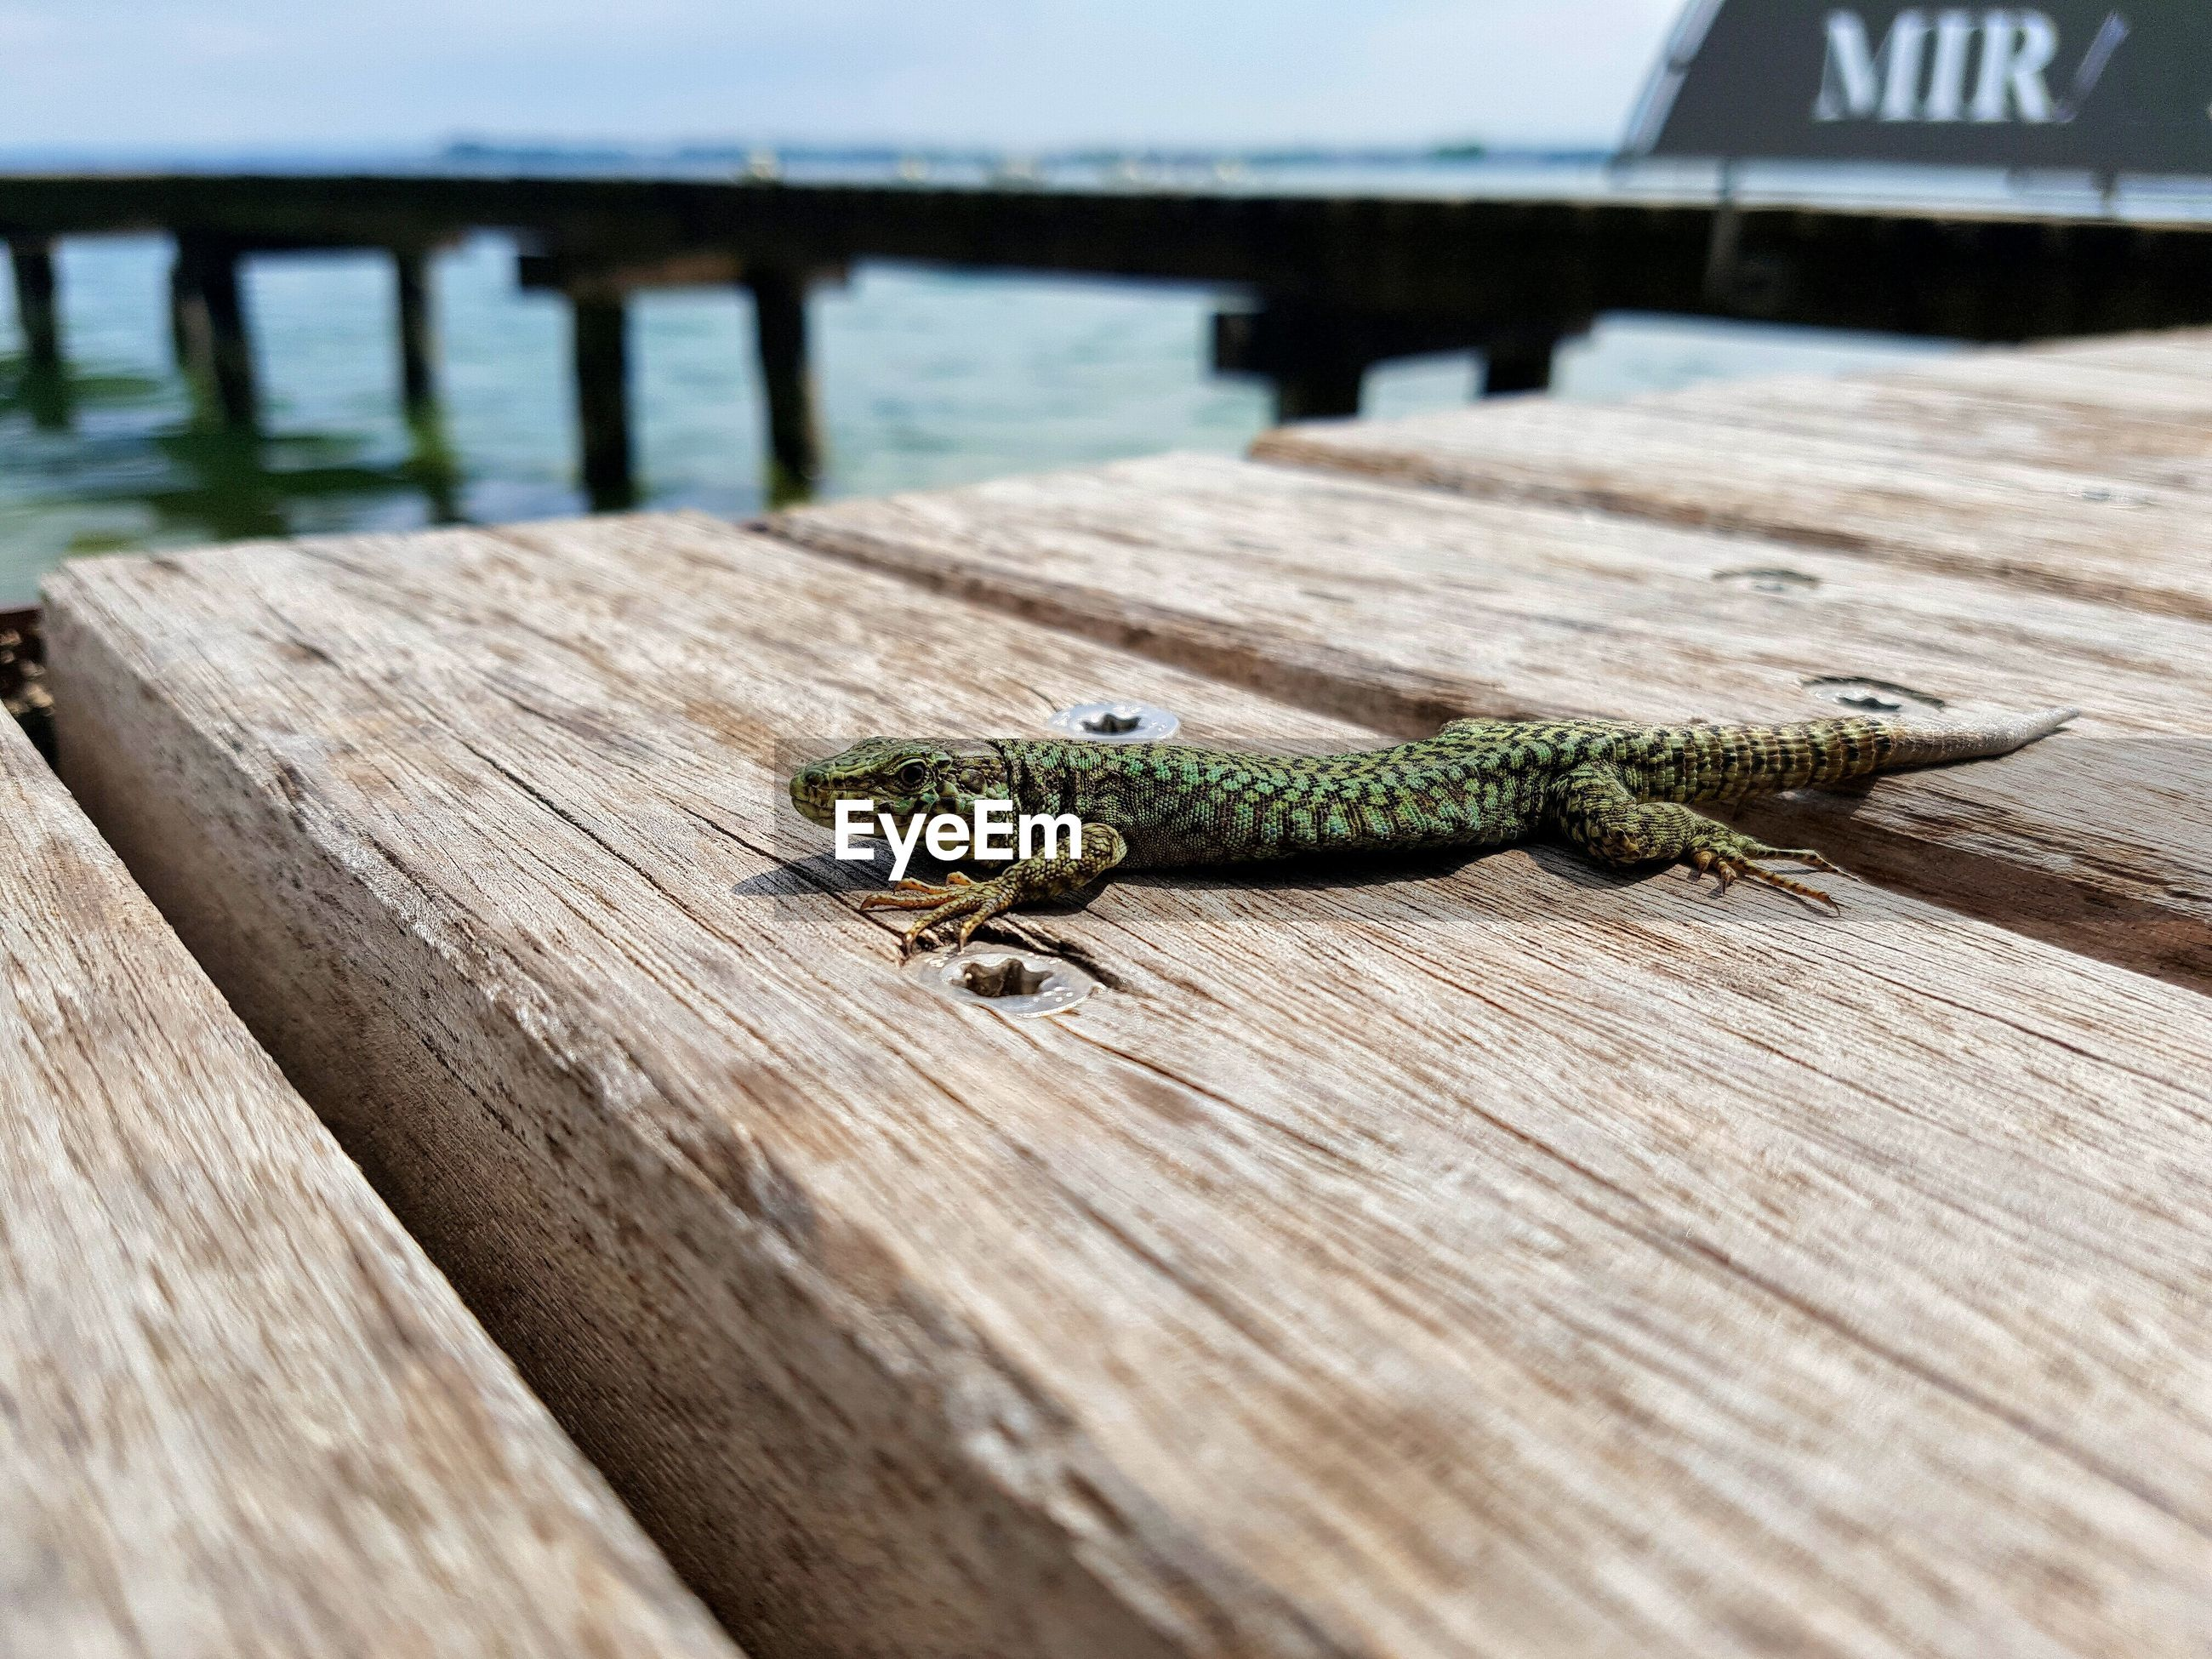 Lizard on wooden pier over lake garda